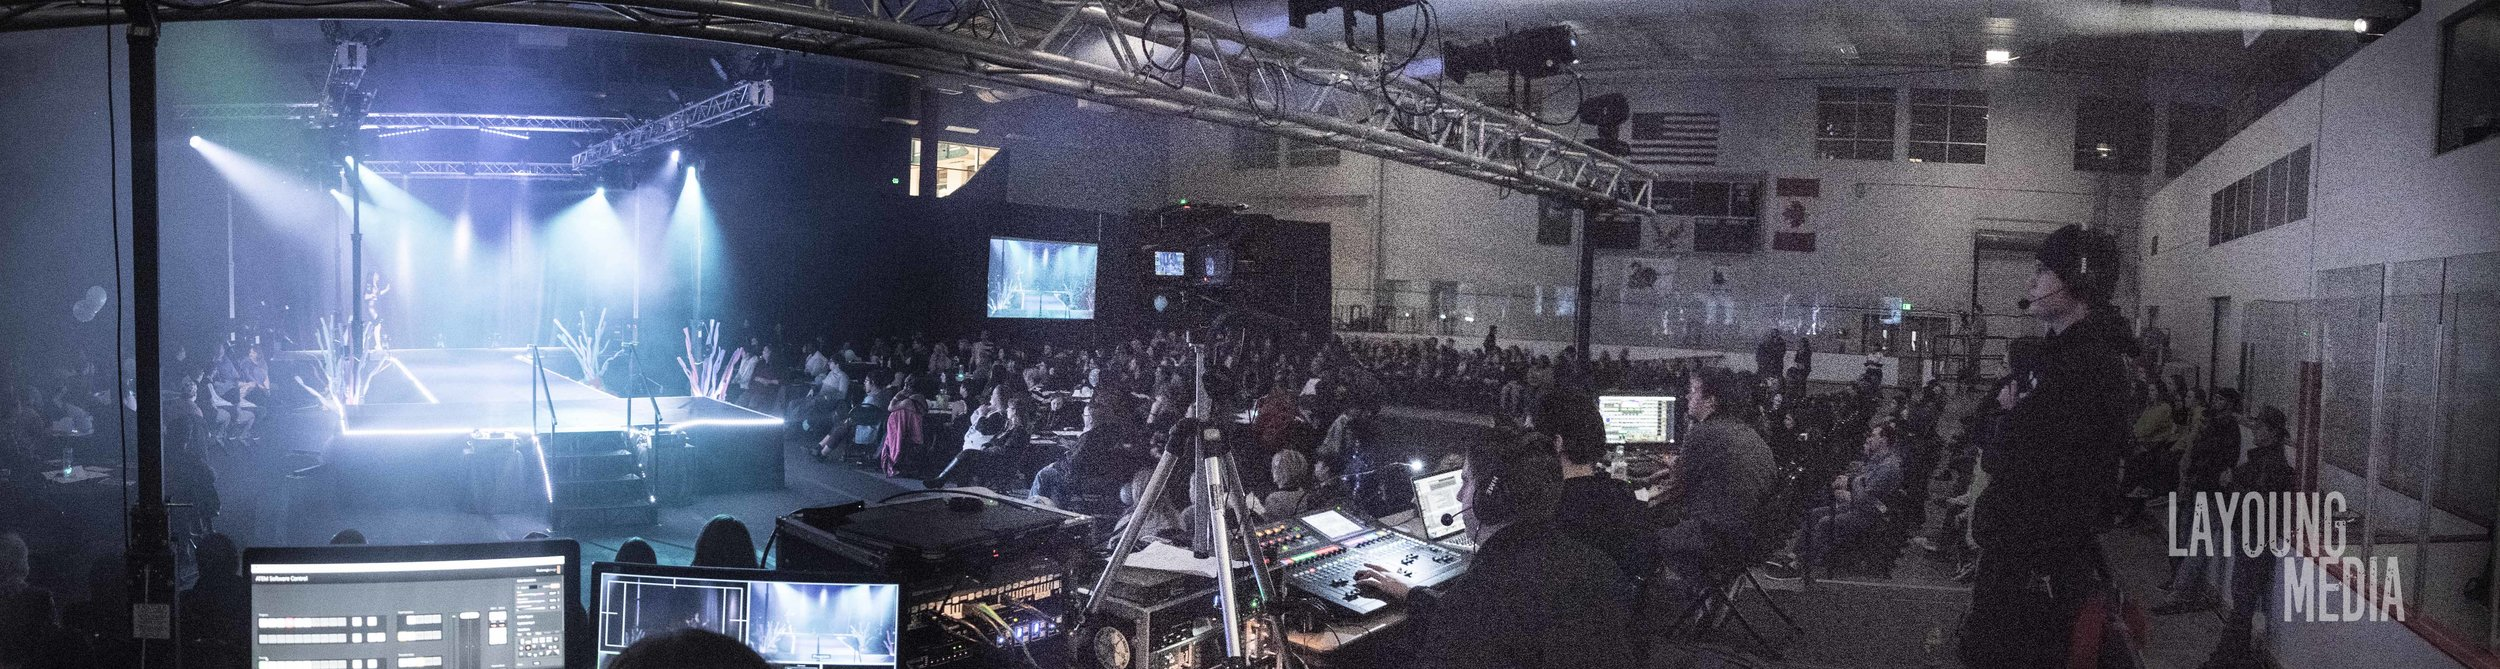 This was my view as the video production manager. I had the lights, camera, and action for my position.